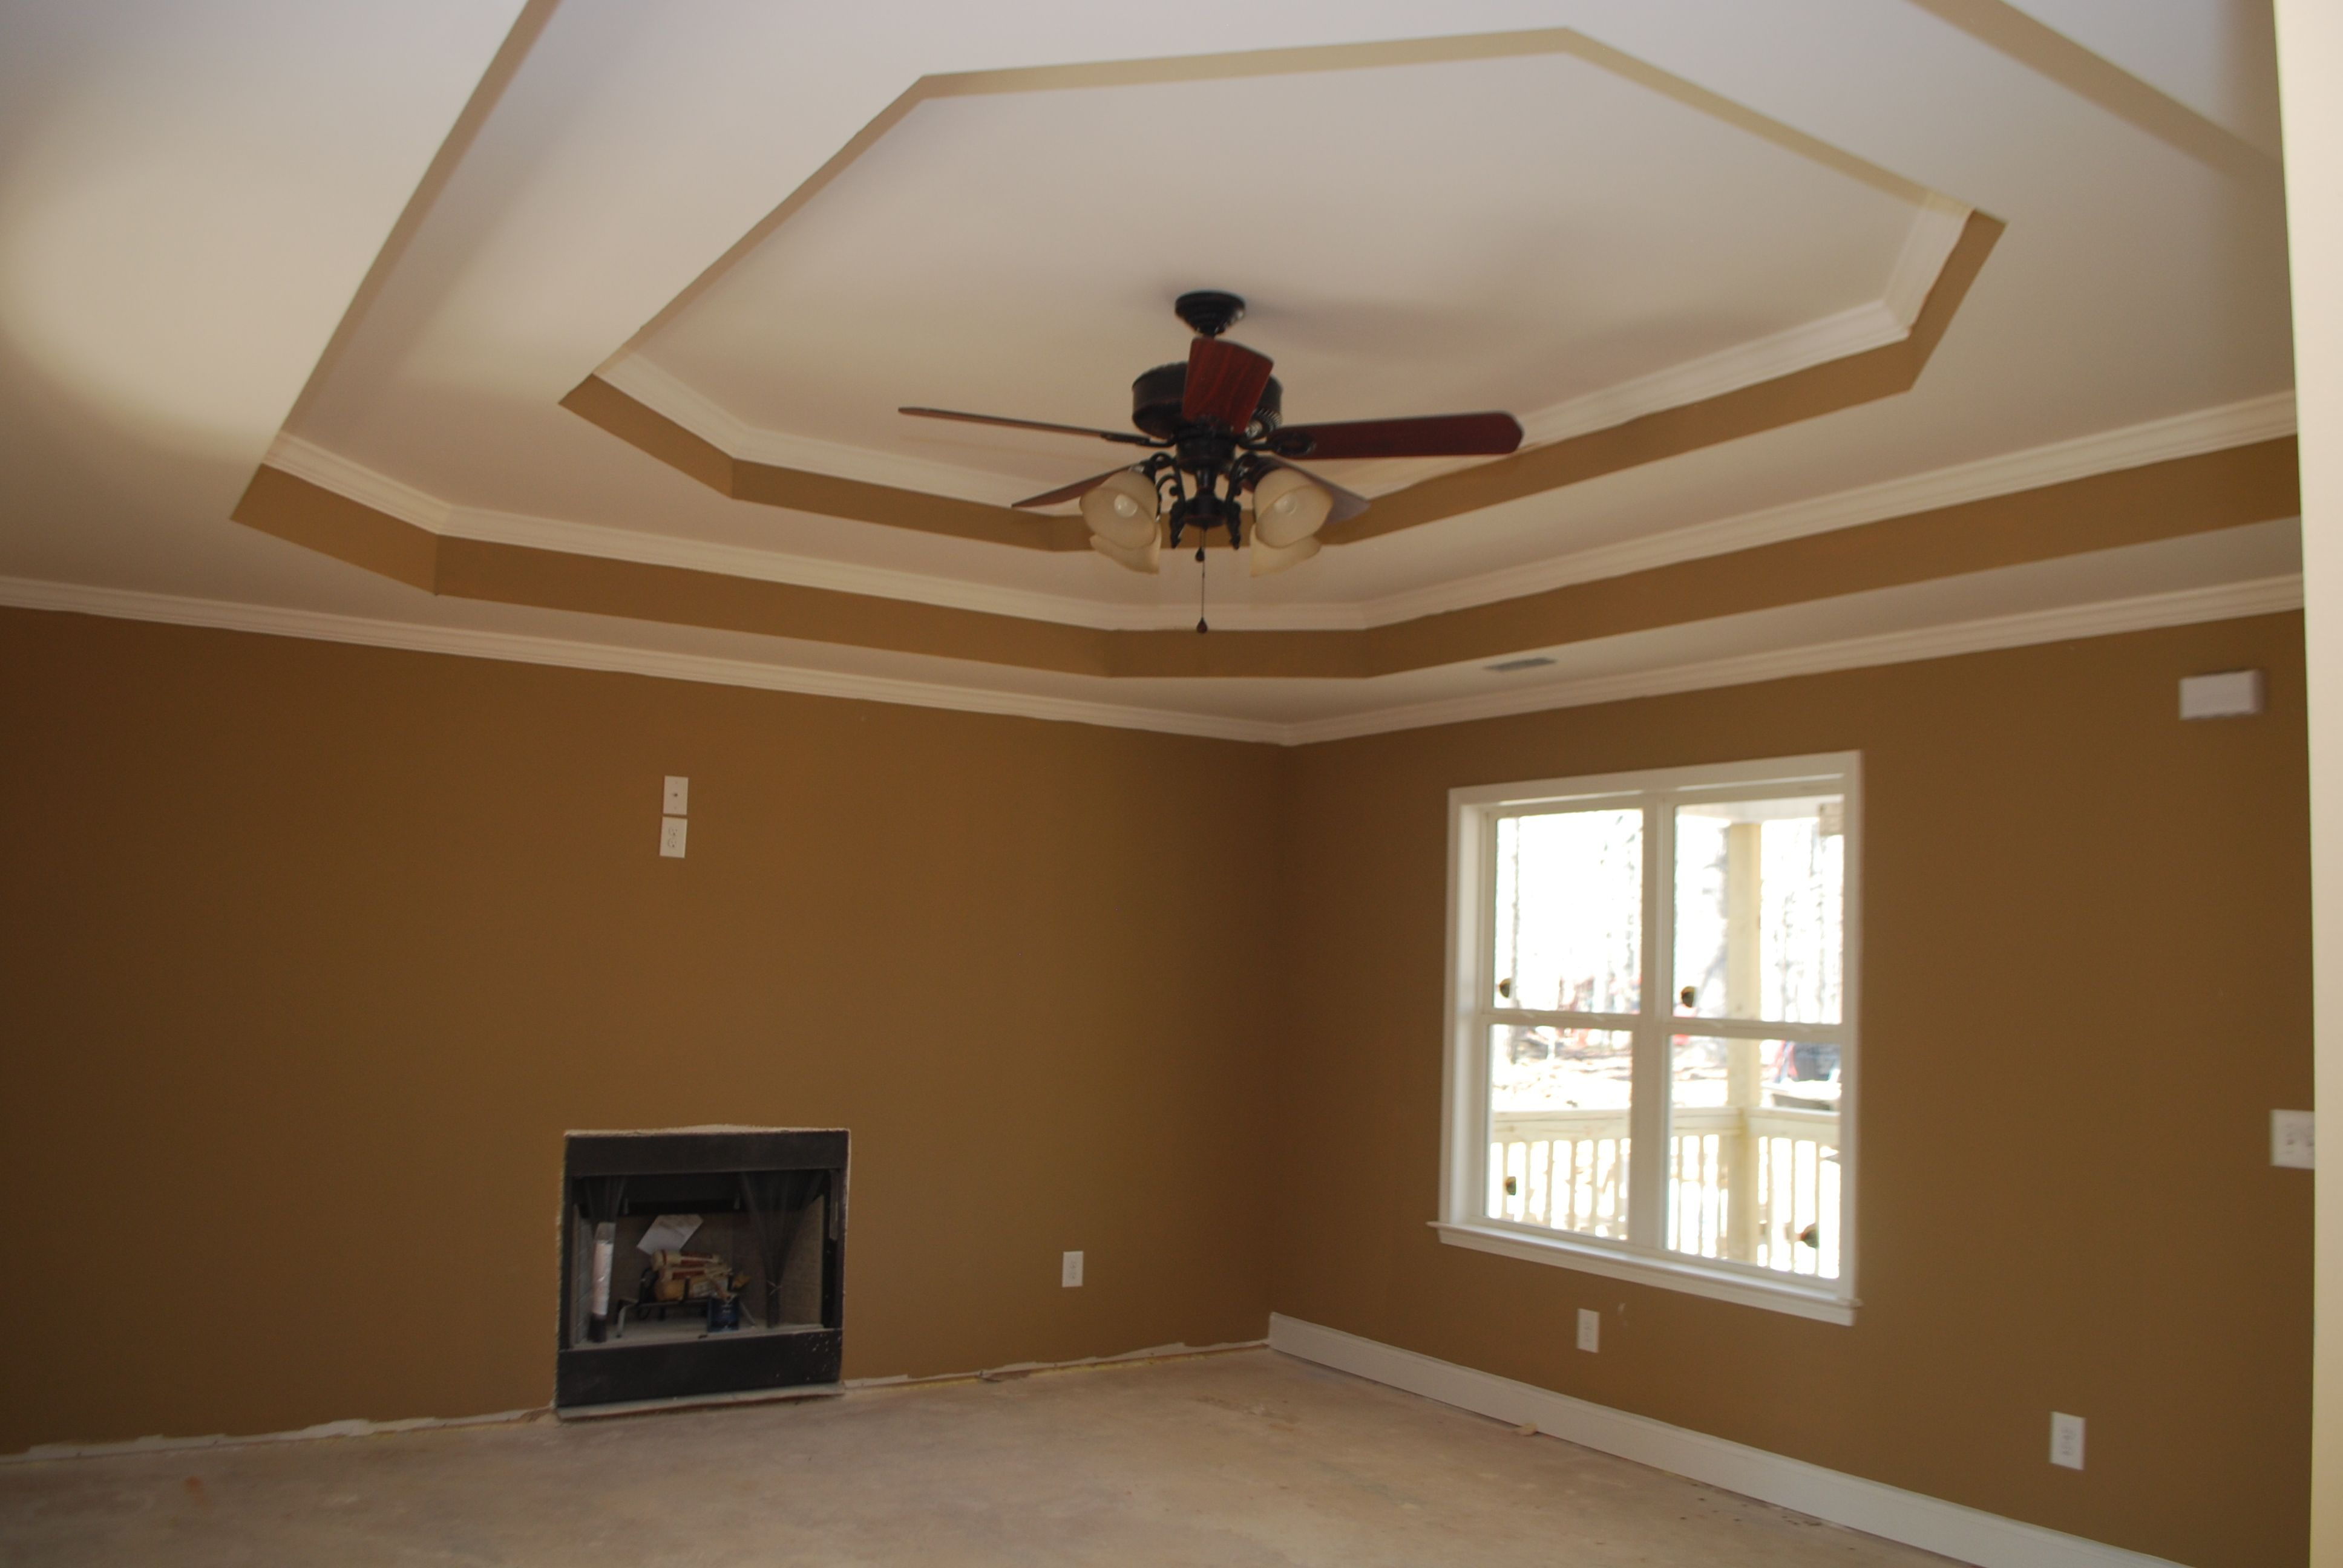 Double Step Tray Ceiling The Color Of The Living Room Is